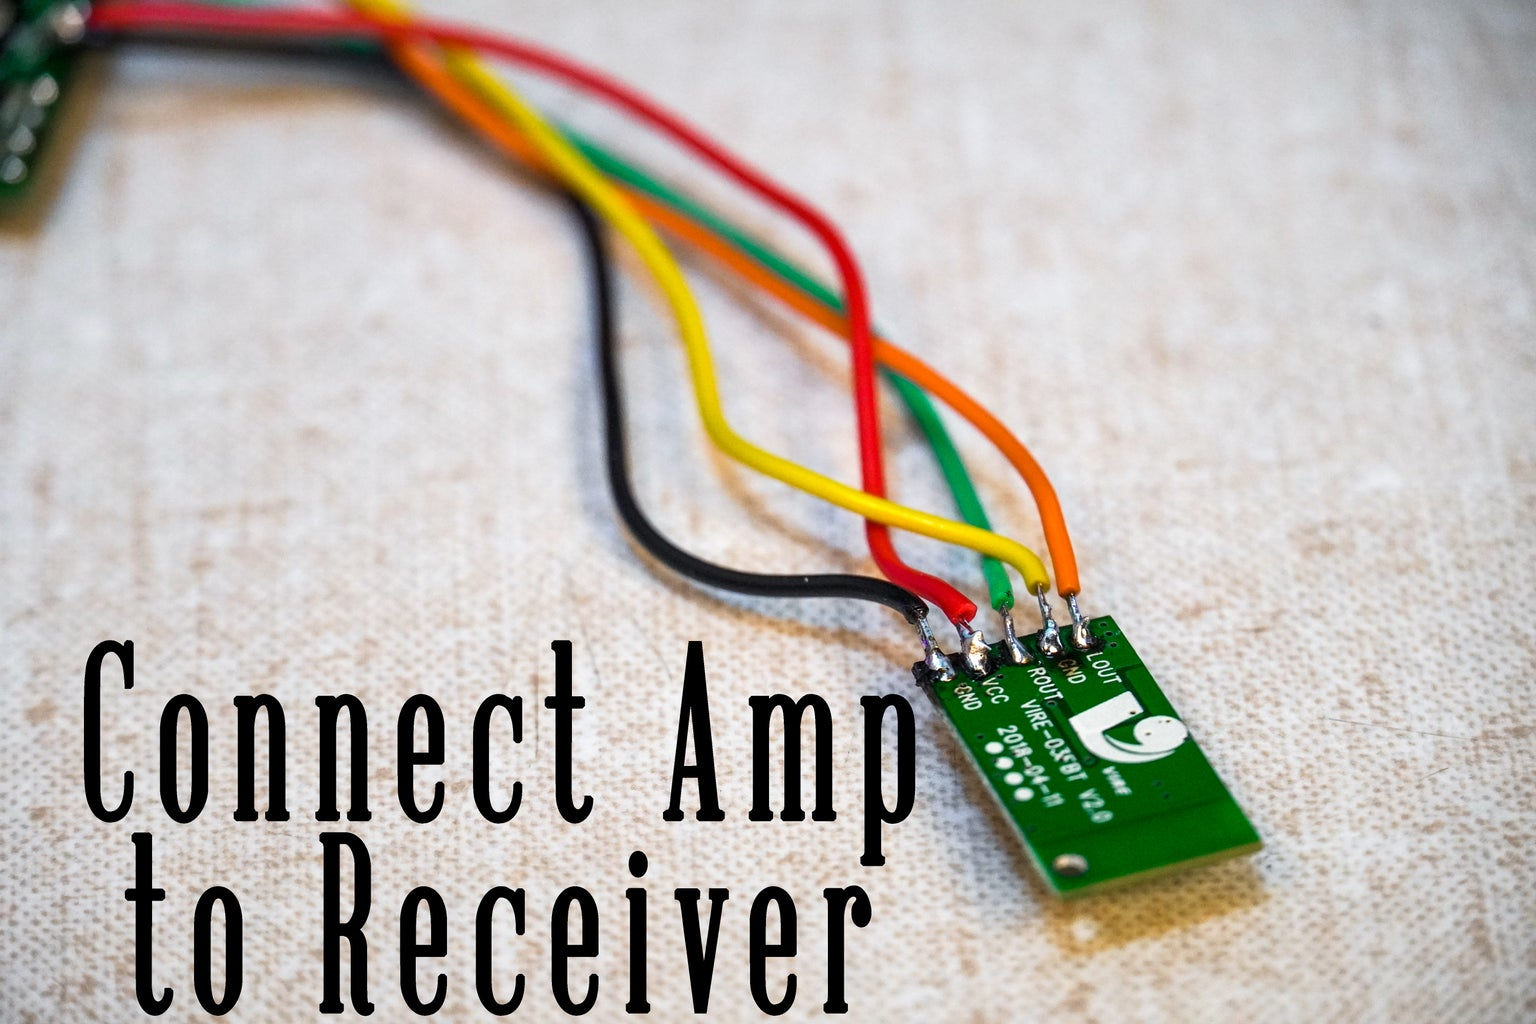 Solder Amplifier and Receiver